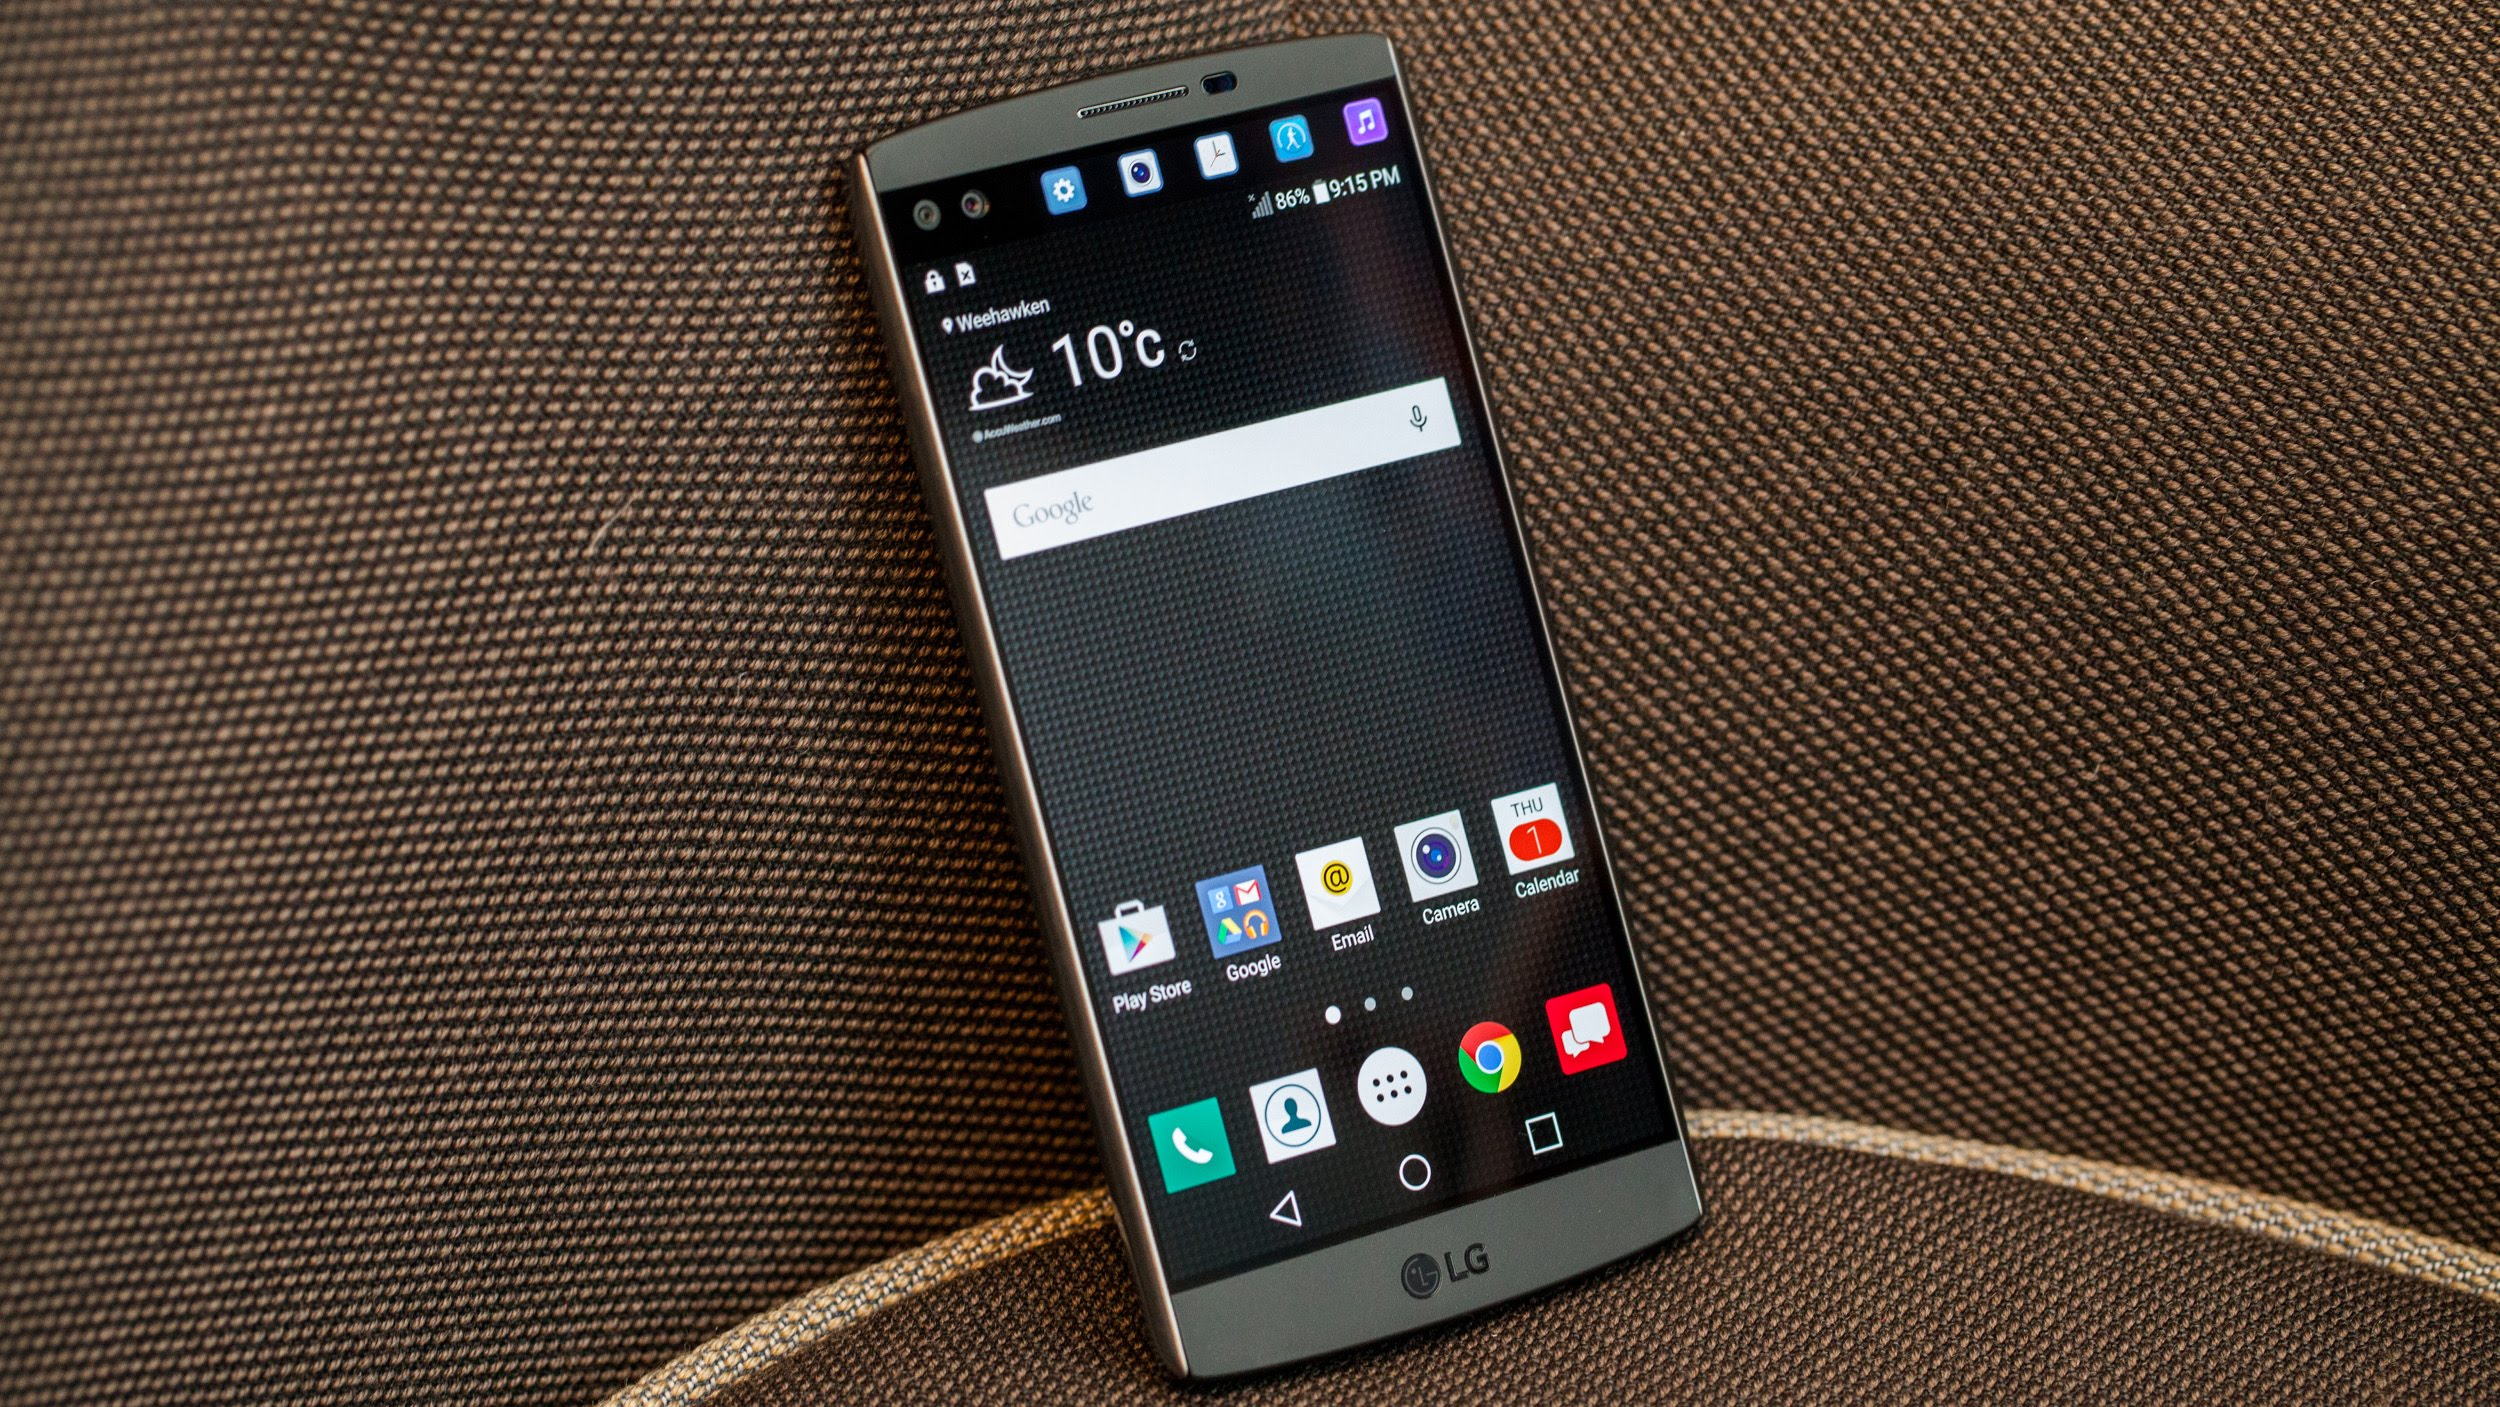 #3 in Our List of the Best LG Touchscreen Phones - LG V10